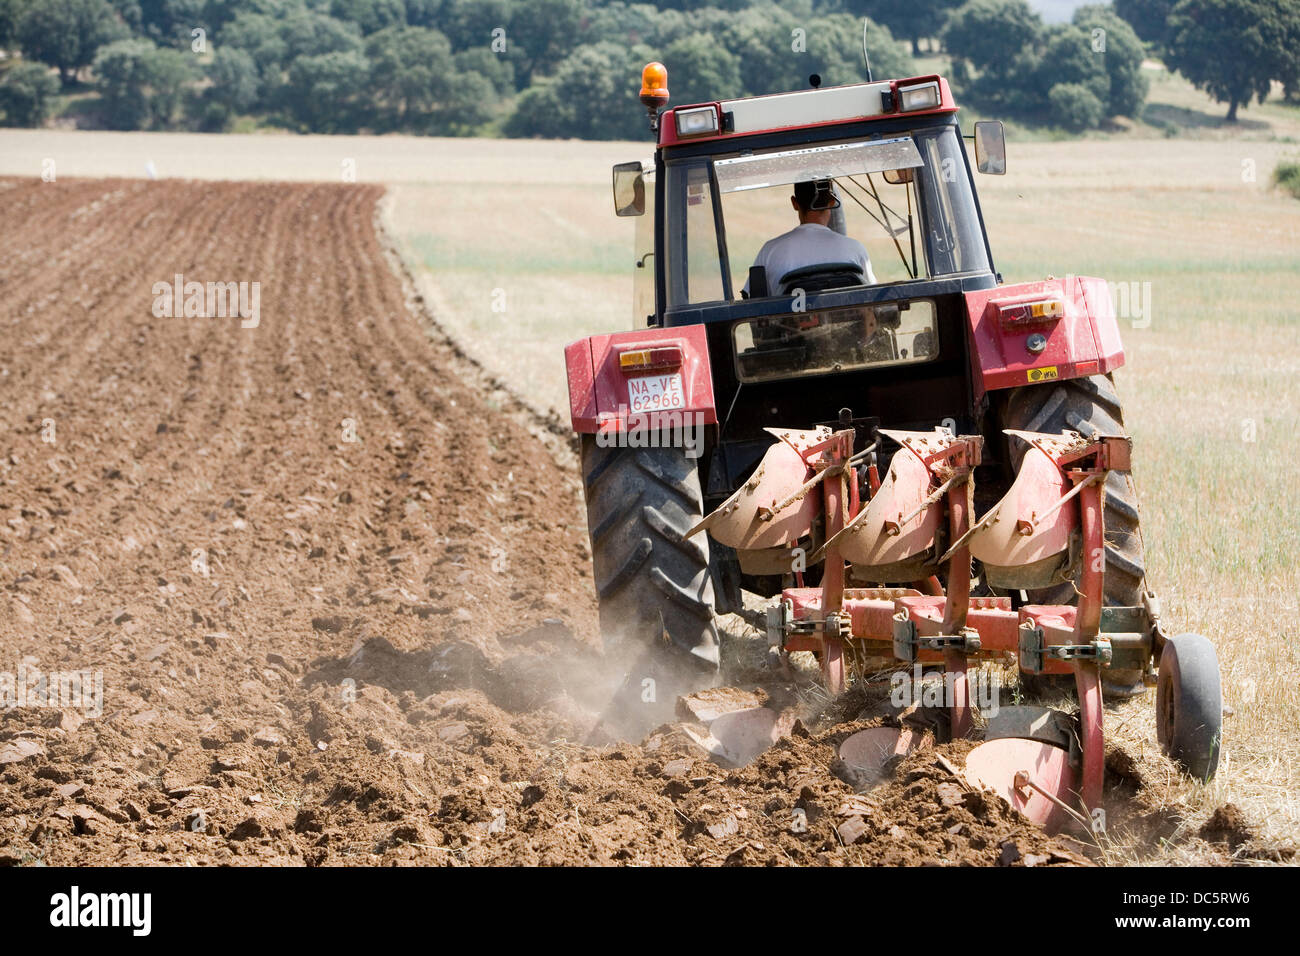 Agricultural machinery. Tractor ploughing the land. Mouldboard plough. Harvesting of cereals, Oco (near Estella), - Stock Image